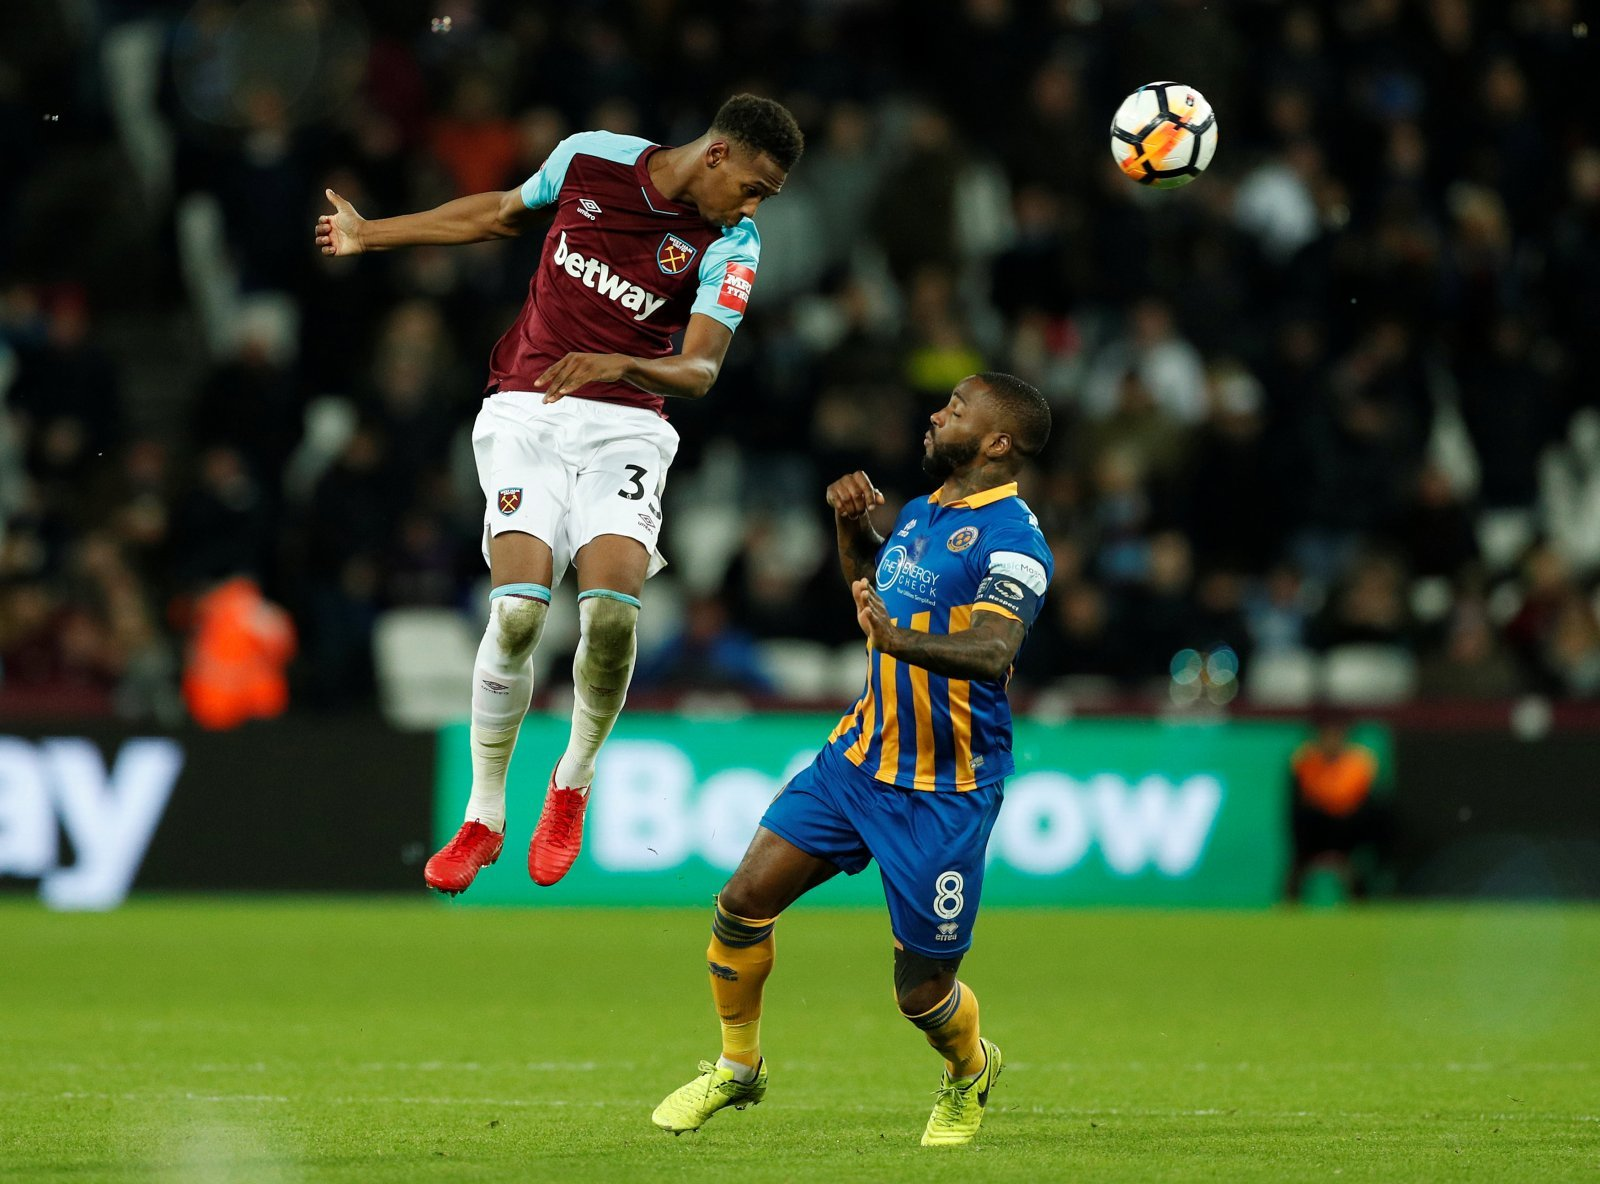 Opinion: Reece Oxford u-turn suggests Manuel Pellegrini could unleash Declan Rice success story of his own